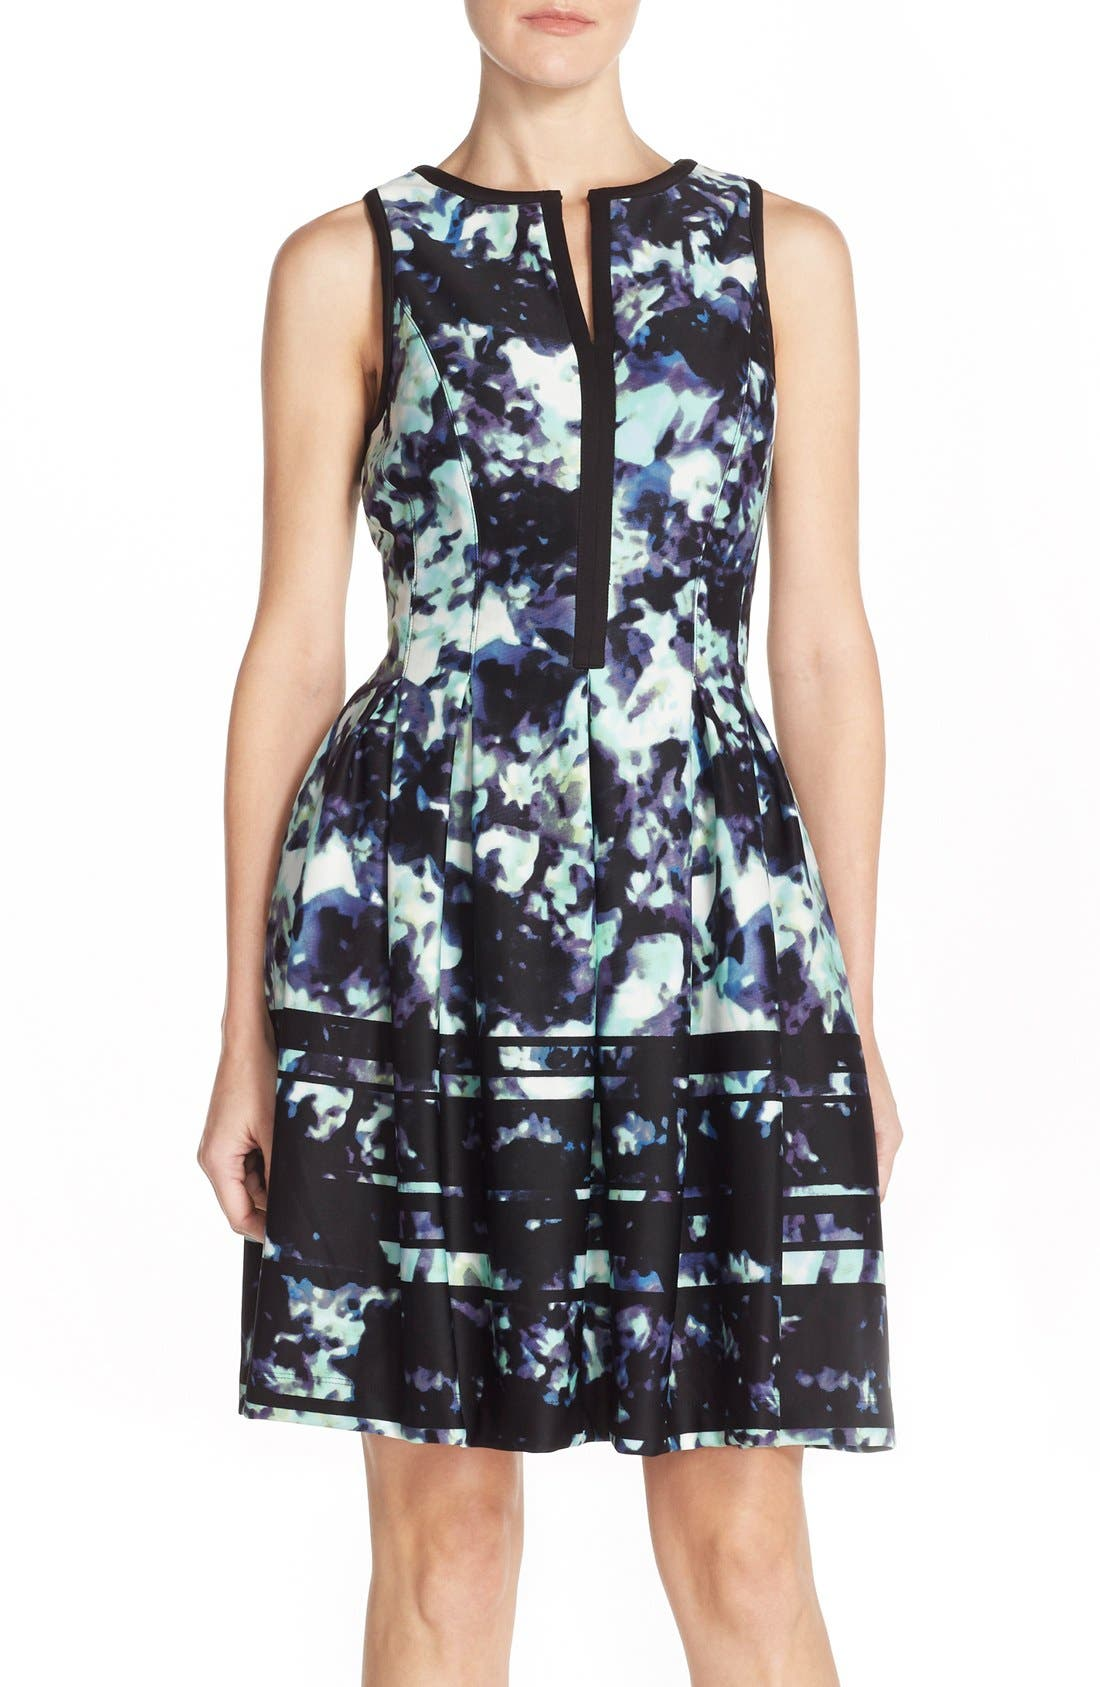 Alternate Image 1 Selected - Vince Camuto Print Scuba Fit & Flare Dress